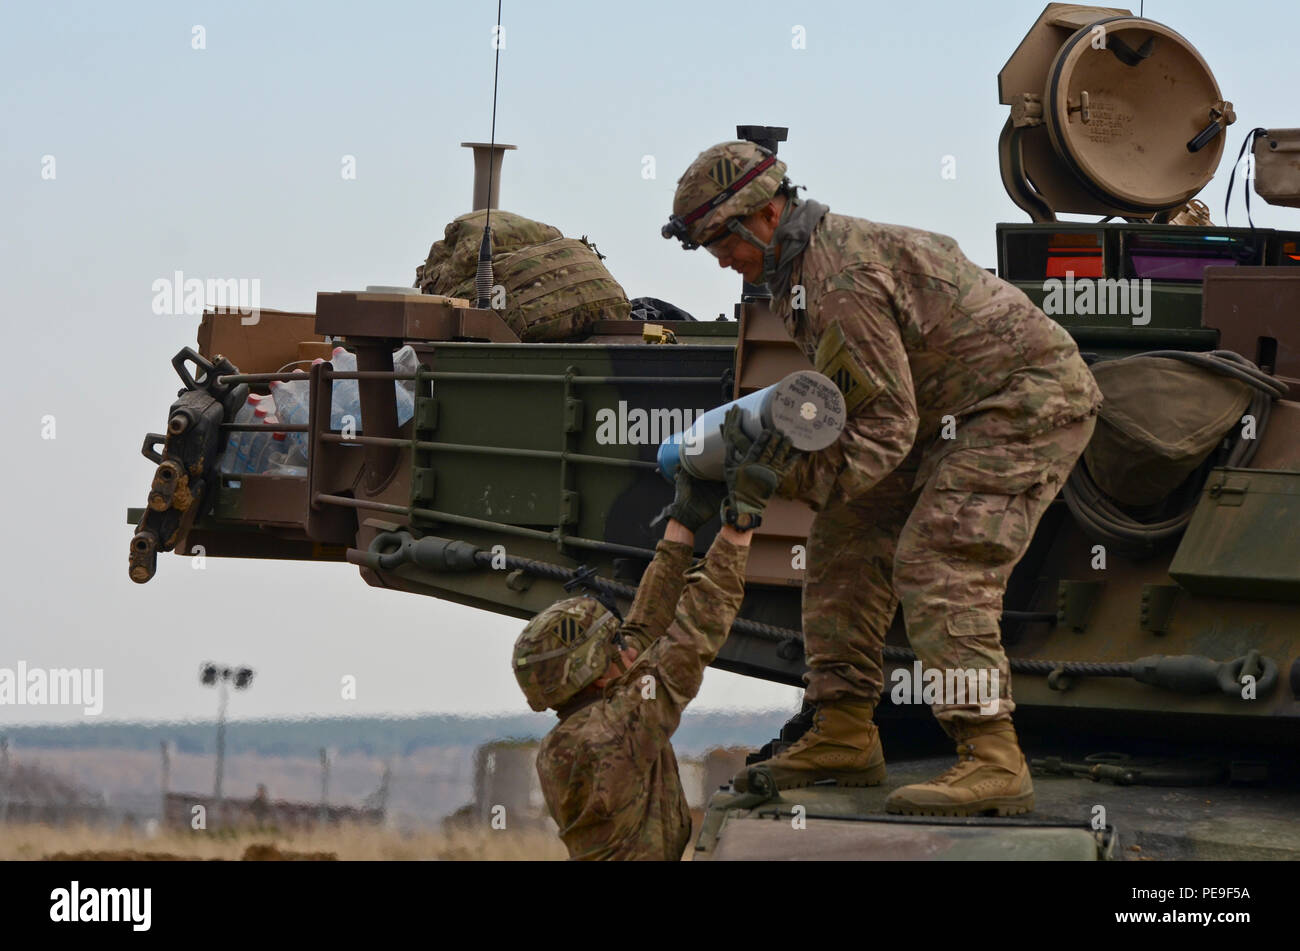 Pfc. Austin HinoJosa, a Delta Company motor transport operator, originally from Leawood, Kan., hands a 120mm round to 2nd Lt. Hemaloto Tatafu, a Delta platoon leader, from Kahuku, Hawaii, both of 1st Armored Brigade Combat Team, attached to 5th Squadron, 7th Cavalry Regiment, 3rd Infantry Division, stationed at Fort Stewart, Ga., during a field training exercise in support of Operation Atlantic Resolve at Novo Selo Training Center, Bulgaria, Nov. 17, 2015. (U.S. Army photo by Staff Sgt. Steven M. Colvin/Released) - Stock Image